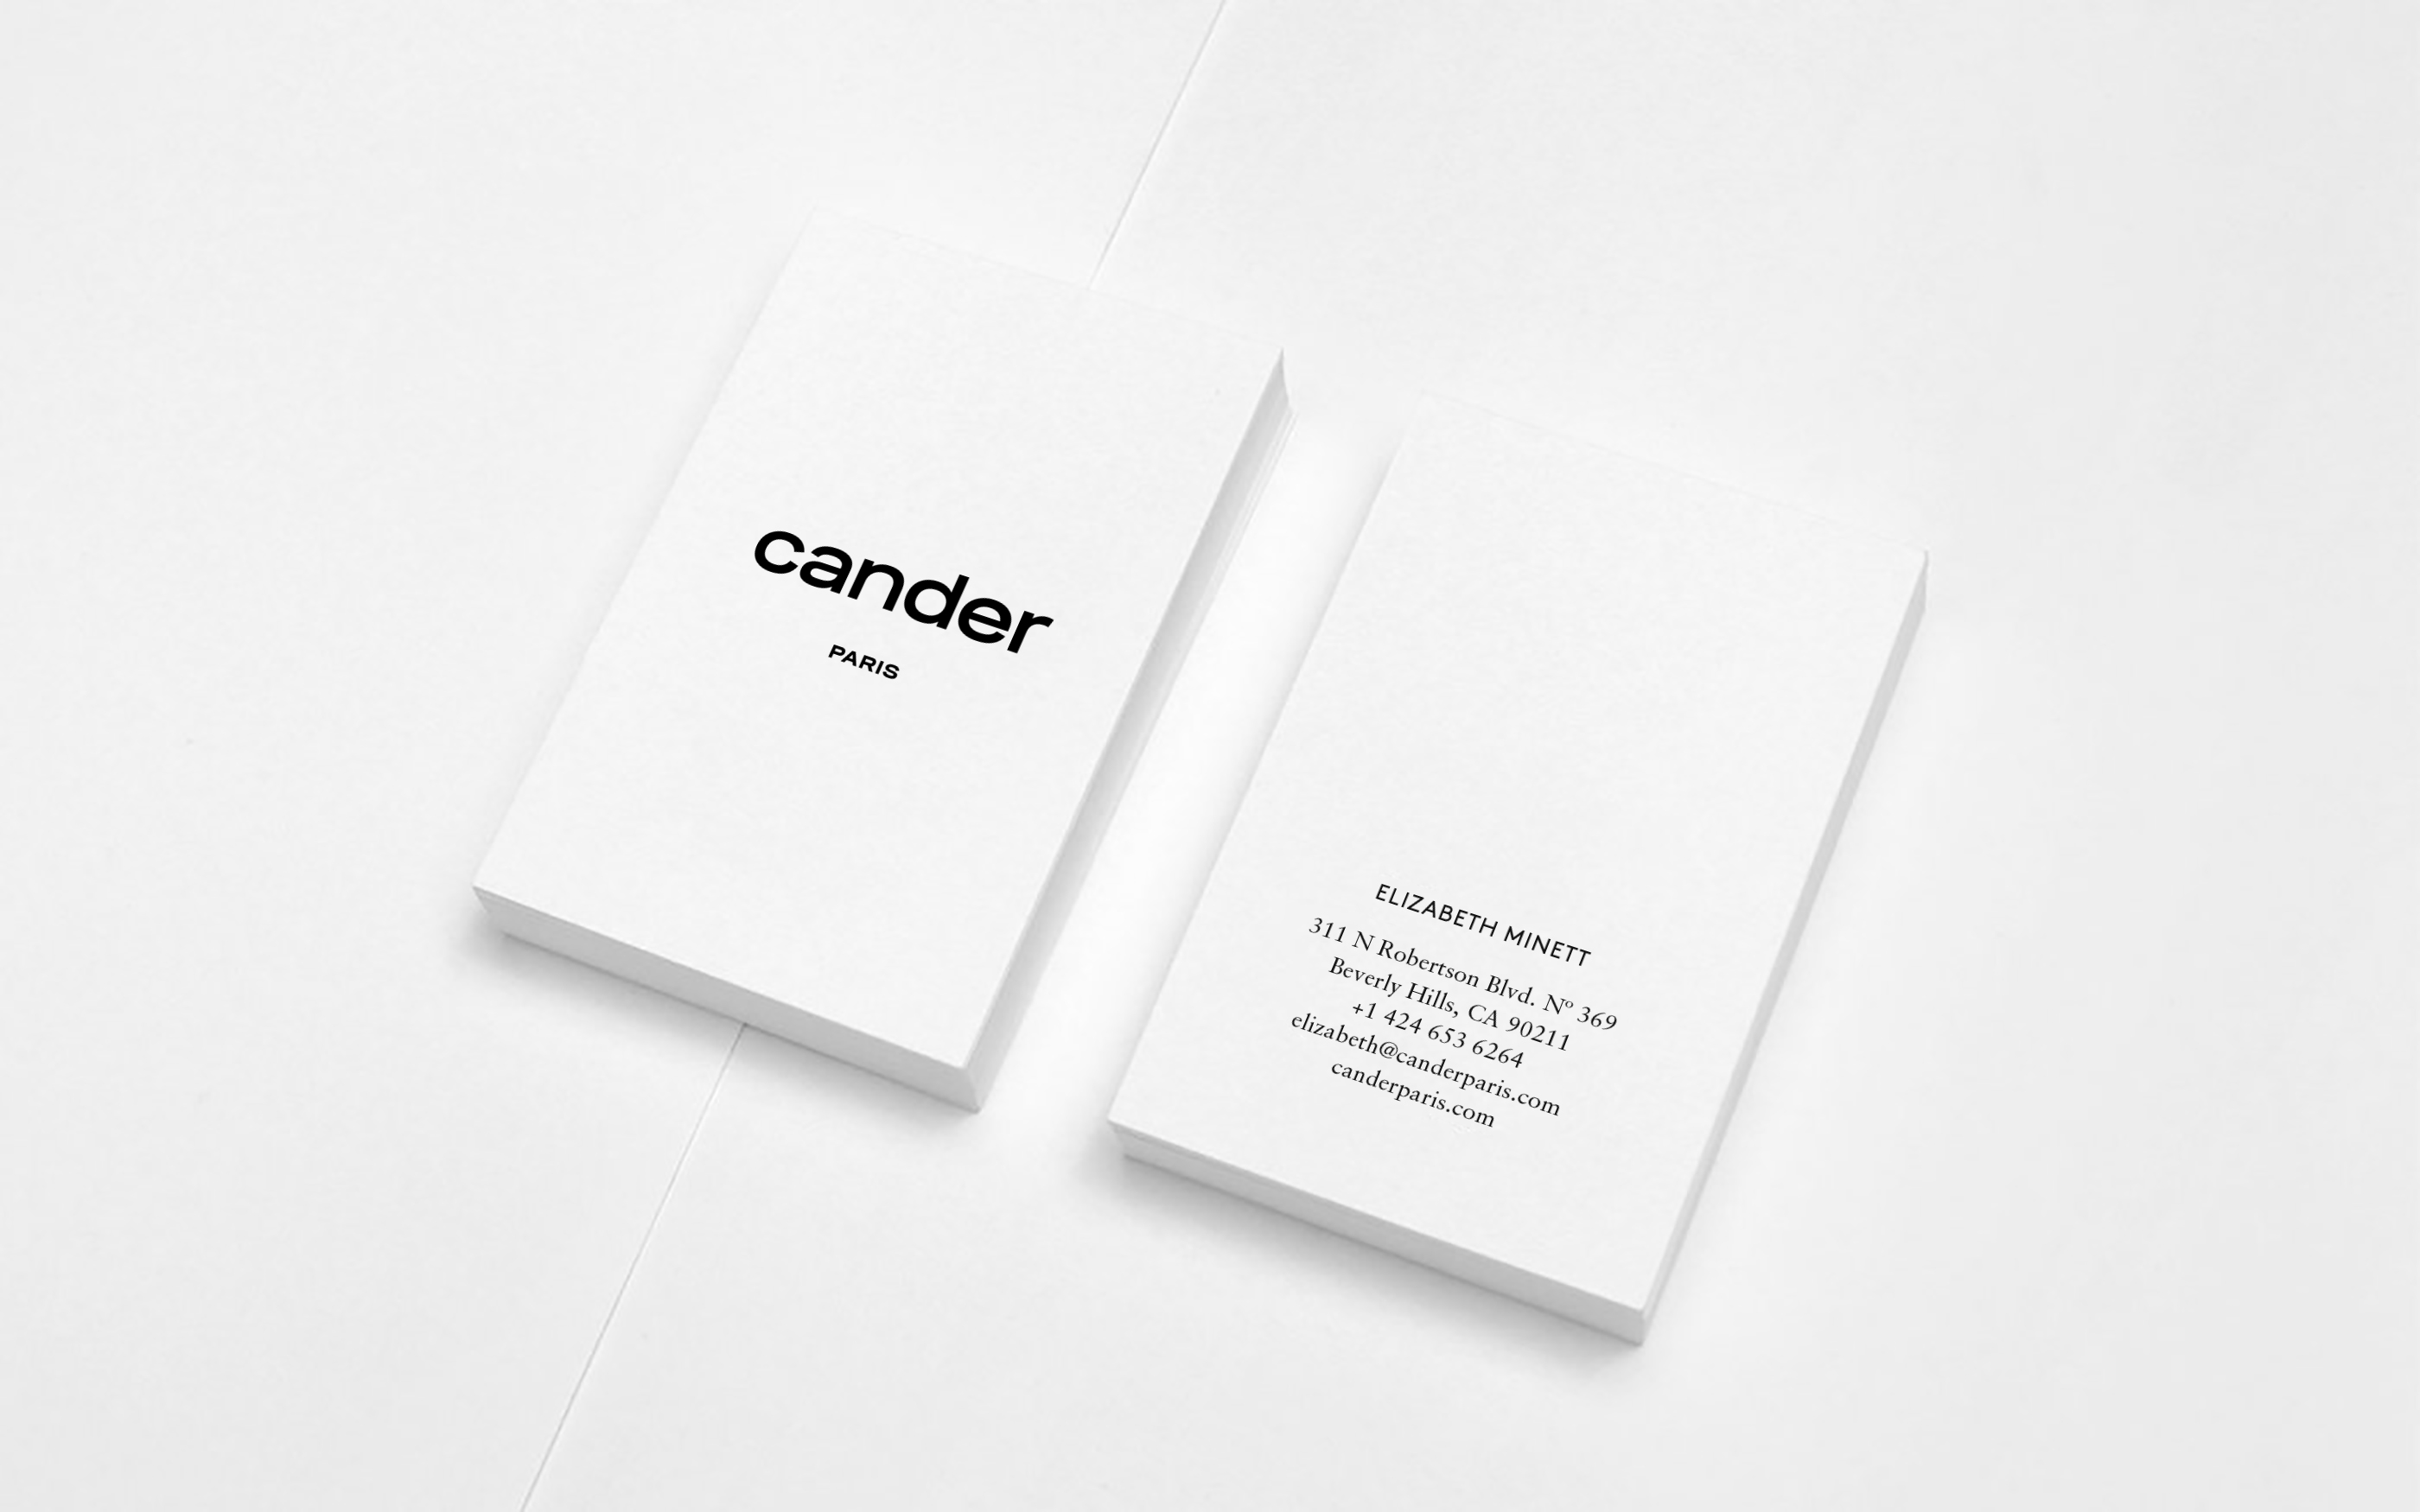 CANDER_PACKAGING_02